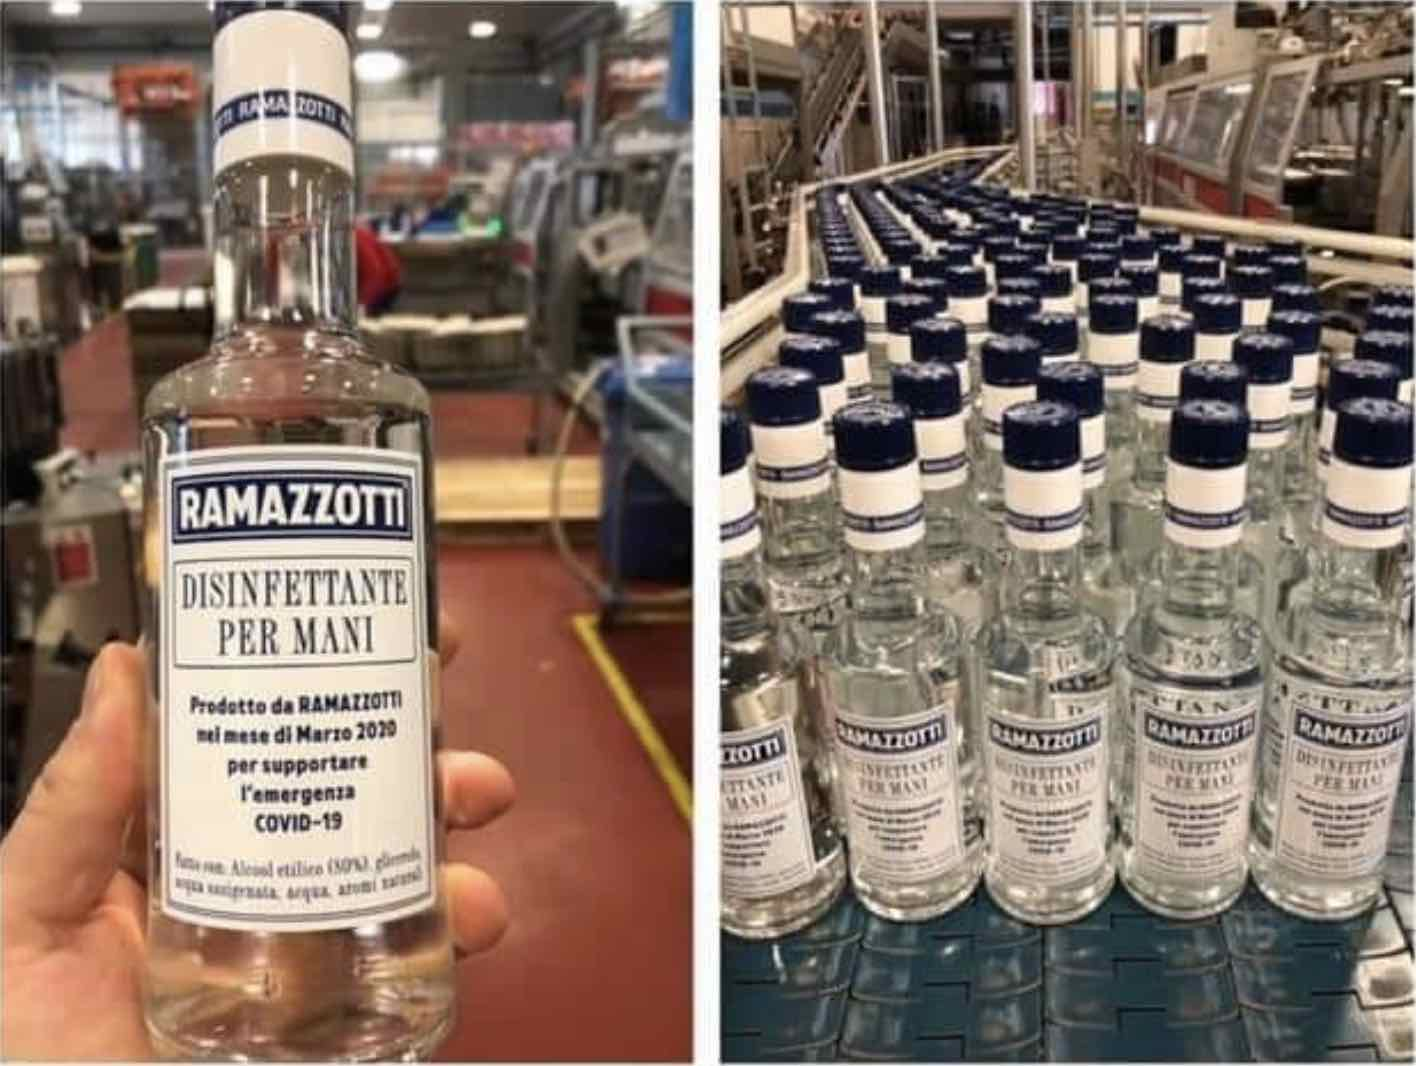 Amaro Ramazzotti produces hand saniitizers